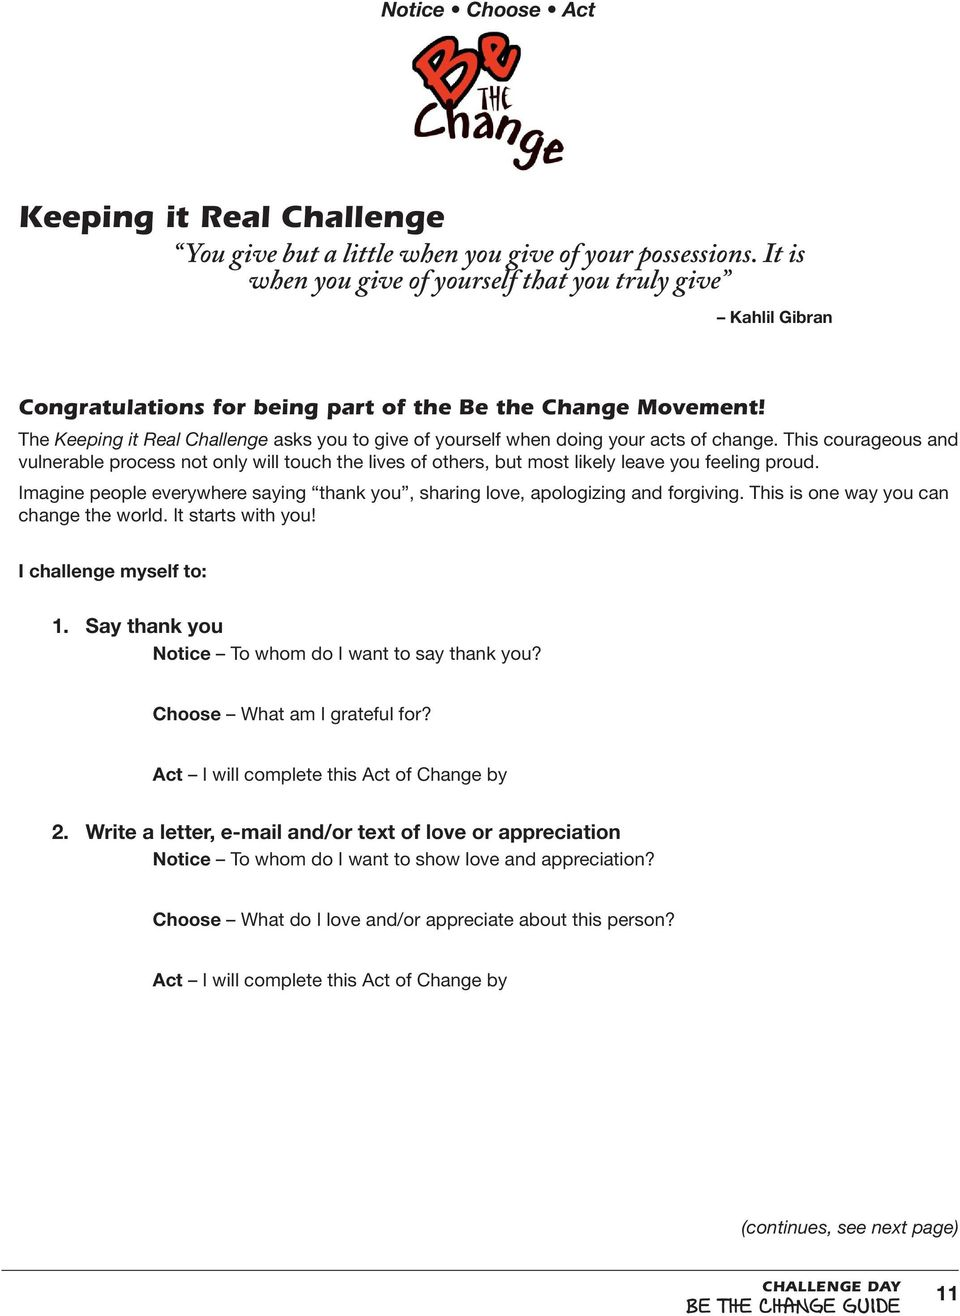 The Keeping it Real Challenge asks you to give of yourself when doing your acts of change.